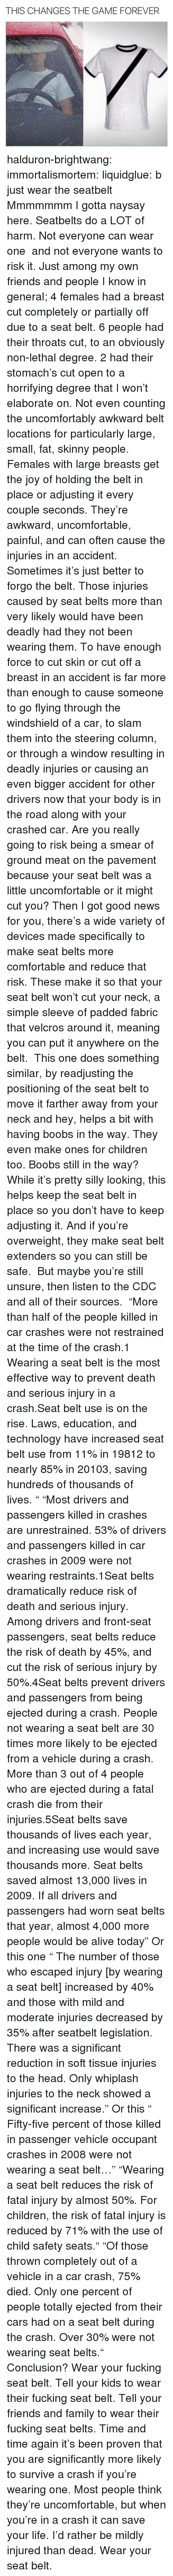 "moderate: THIS CHANGES THE GAME FOREVER halduron-brightwang:  immortalismortem:  liquidglue:   b just wear the seatbelt   Mmmmmmm I gotta naysay here. Seatbelts do a LOT of harm. Not everyone can wear one  and not everyone wants to risk it. Just among my own friends and people I know in general; 4 females had a breast cut completely or partially off due to a seat belt. 6 people had their throats cut, to an obviously non-lethal degree. 2 had their stomach's cut open to a horrifying degree that I won't elaborate on. Not even counting the uncomfortably awkward belt locations for particularly large, small, fat, skinny people. Females with large breasts get the joy of holding the belt in place or adjusting it every couple seconds. They're awkward, uncomfortable, painful, and can often cause the injuries in an accident. Sometimes it's just better to forgo the belt.  Those injuries caused by seat belts more than very likely would have been deadly had they not been wearing them. To have enough force to cut skin or cut off a breast in an accident is far more than enough to cause someone to go flying through the windshield of a car, to slam them into the steering column, or through a window resulting in deadly injuries or causing an even bigger accident for other drivers now that your body is in the road along with your crashed car. Are you really going to risk being a smear of ground meat on the pavement because your seat belt was a little uncomfortable or it might cut you? Then I got good news for you, there's a wide variety of devices made specifically to make seat belts more comfortable and reduce that risk. These make it so that your seat belt won't cut your neck, a simple sleeve of padded fabric that velcros around it, meaning you can put it anywhere on the belt.  This one does something similar, by readjusting the positioning of the seat belt to move it farther away from your neck and hey, helps a bit with having boobs in the way. They even make ones for children too. Boobs still in the way? While it's pretty silly looking, this helps keep the seat belt in place so you don't have to keep adjusting it. And if you're overweight, they make seat belt extenders so you can still be safe.  But maybe you're still unsure, then listen to the CDC and all of their sources.  ""More than half of the people killed in car crashes were not restrained at the time of the crash.1 Wearing a seat belt is the most effective way to prevent death and serious injury in a crash.Seat belt use is on the rise. Laws, education, and technology have increased seat belt use from 11% in 19812 to nearly 85% in 20103, saving hundreds of thousands of lives. "" ""Most drivers and passengers killed in crashes are unrestrained. 53% of drivers and passengers killed in car crashes in 2009 were not wearing restraints.1Seat belts dramatically reduce risk of death and serious injury. Among drivers and front-seat passengers, seat belts reduce the risk of death by 45%, and cut the risk of serious injury by 50%.4Seat belts prevent drivers and passengers from being ejected during a crash. People not wearing a seat belt are 30 times more likely to be ejected from a vehicle during a crash. More than 3 out of 4 people who are ejected during a fatal crash die from their injuries.5Seat belts save thousands of lives each year, and increasing use would save thousands more. Seat belts saved almost 13,000 lives in 2009. If all drivers and passengers had worn seat belts that year, almost 4,000 more people would be alive today"" Or this one ""   The number of those who escaped injury [by wearing a seat belt] increased by 40% and those with mild and moderate injuries decreased by 35% after seatbelt legislation. There was a significant reduction in soft tissue injuries to the head. Only whiplash injuries to the neck showed a significant increase."" Or this ""  Fifty-five percent of those killed in passenger vehicle occupant crashes in 2008 were not wearing a seat belt…"" ""Wearing a seat belt reduces the risk of fatal injury by almost 50%. For children, the risk of fatal injury is reduced by 71% with the use of child safety seats."" ""Of those thrown completely out of a vehicle in a car crash, 75% died. Only one percent of people totally ejected from their cars had on a seat belt during the crash. Over 30% were not wearing seat belts."" Conclusion? Wear your fucking seat belt. Tell your kids to wear their fucking seat belt. Tell your friends and family to wear their fucking seat belts. Time and time again it's been proven that you are significantly more likely to survive a crash if you're wearing one. Most people think they're uncomfortable, but when you're in a crash it can save your life. I'd rather be mildly injured than dead. Wear your seat belt."